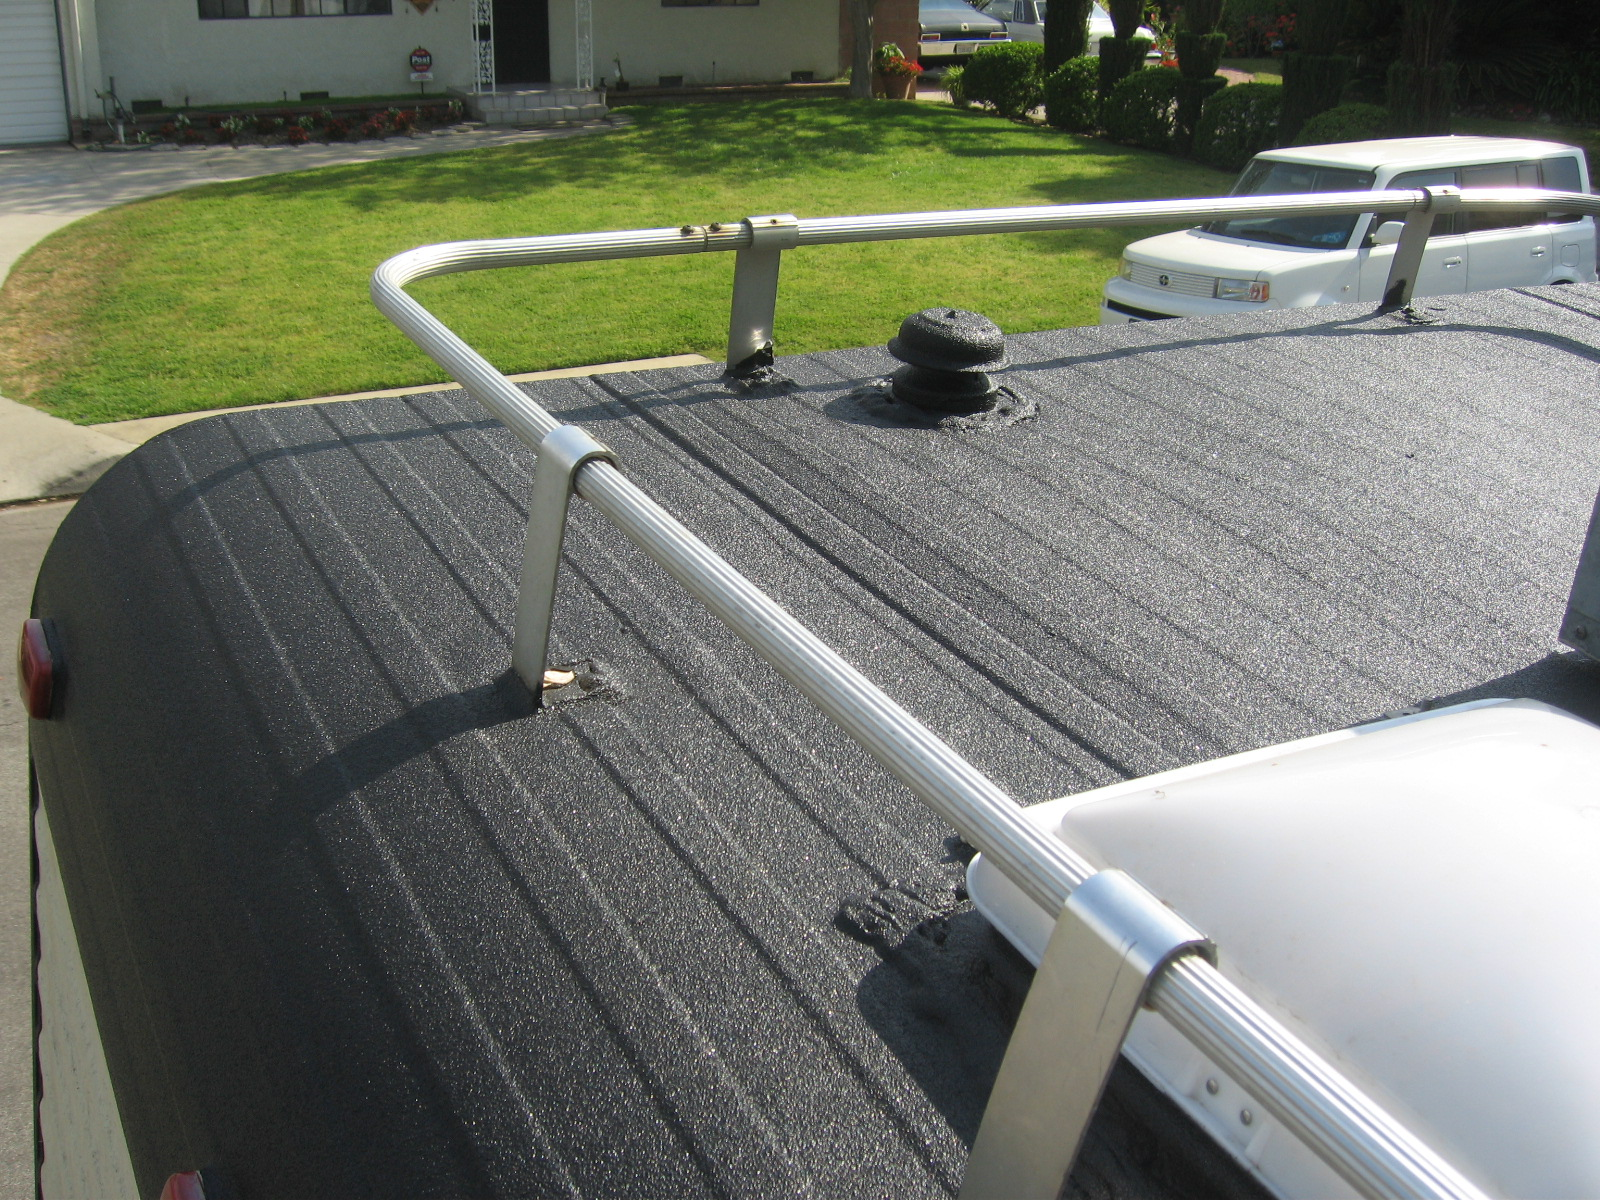 My New Roof Spray On Bed Liner General Discussion